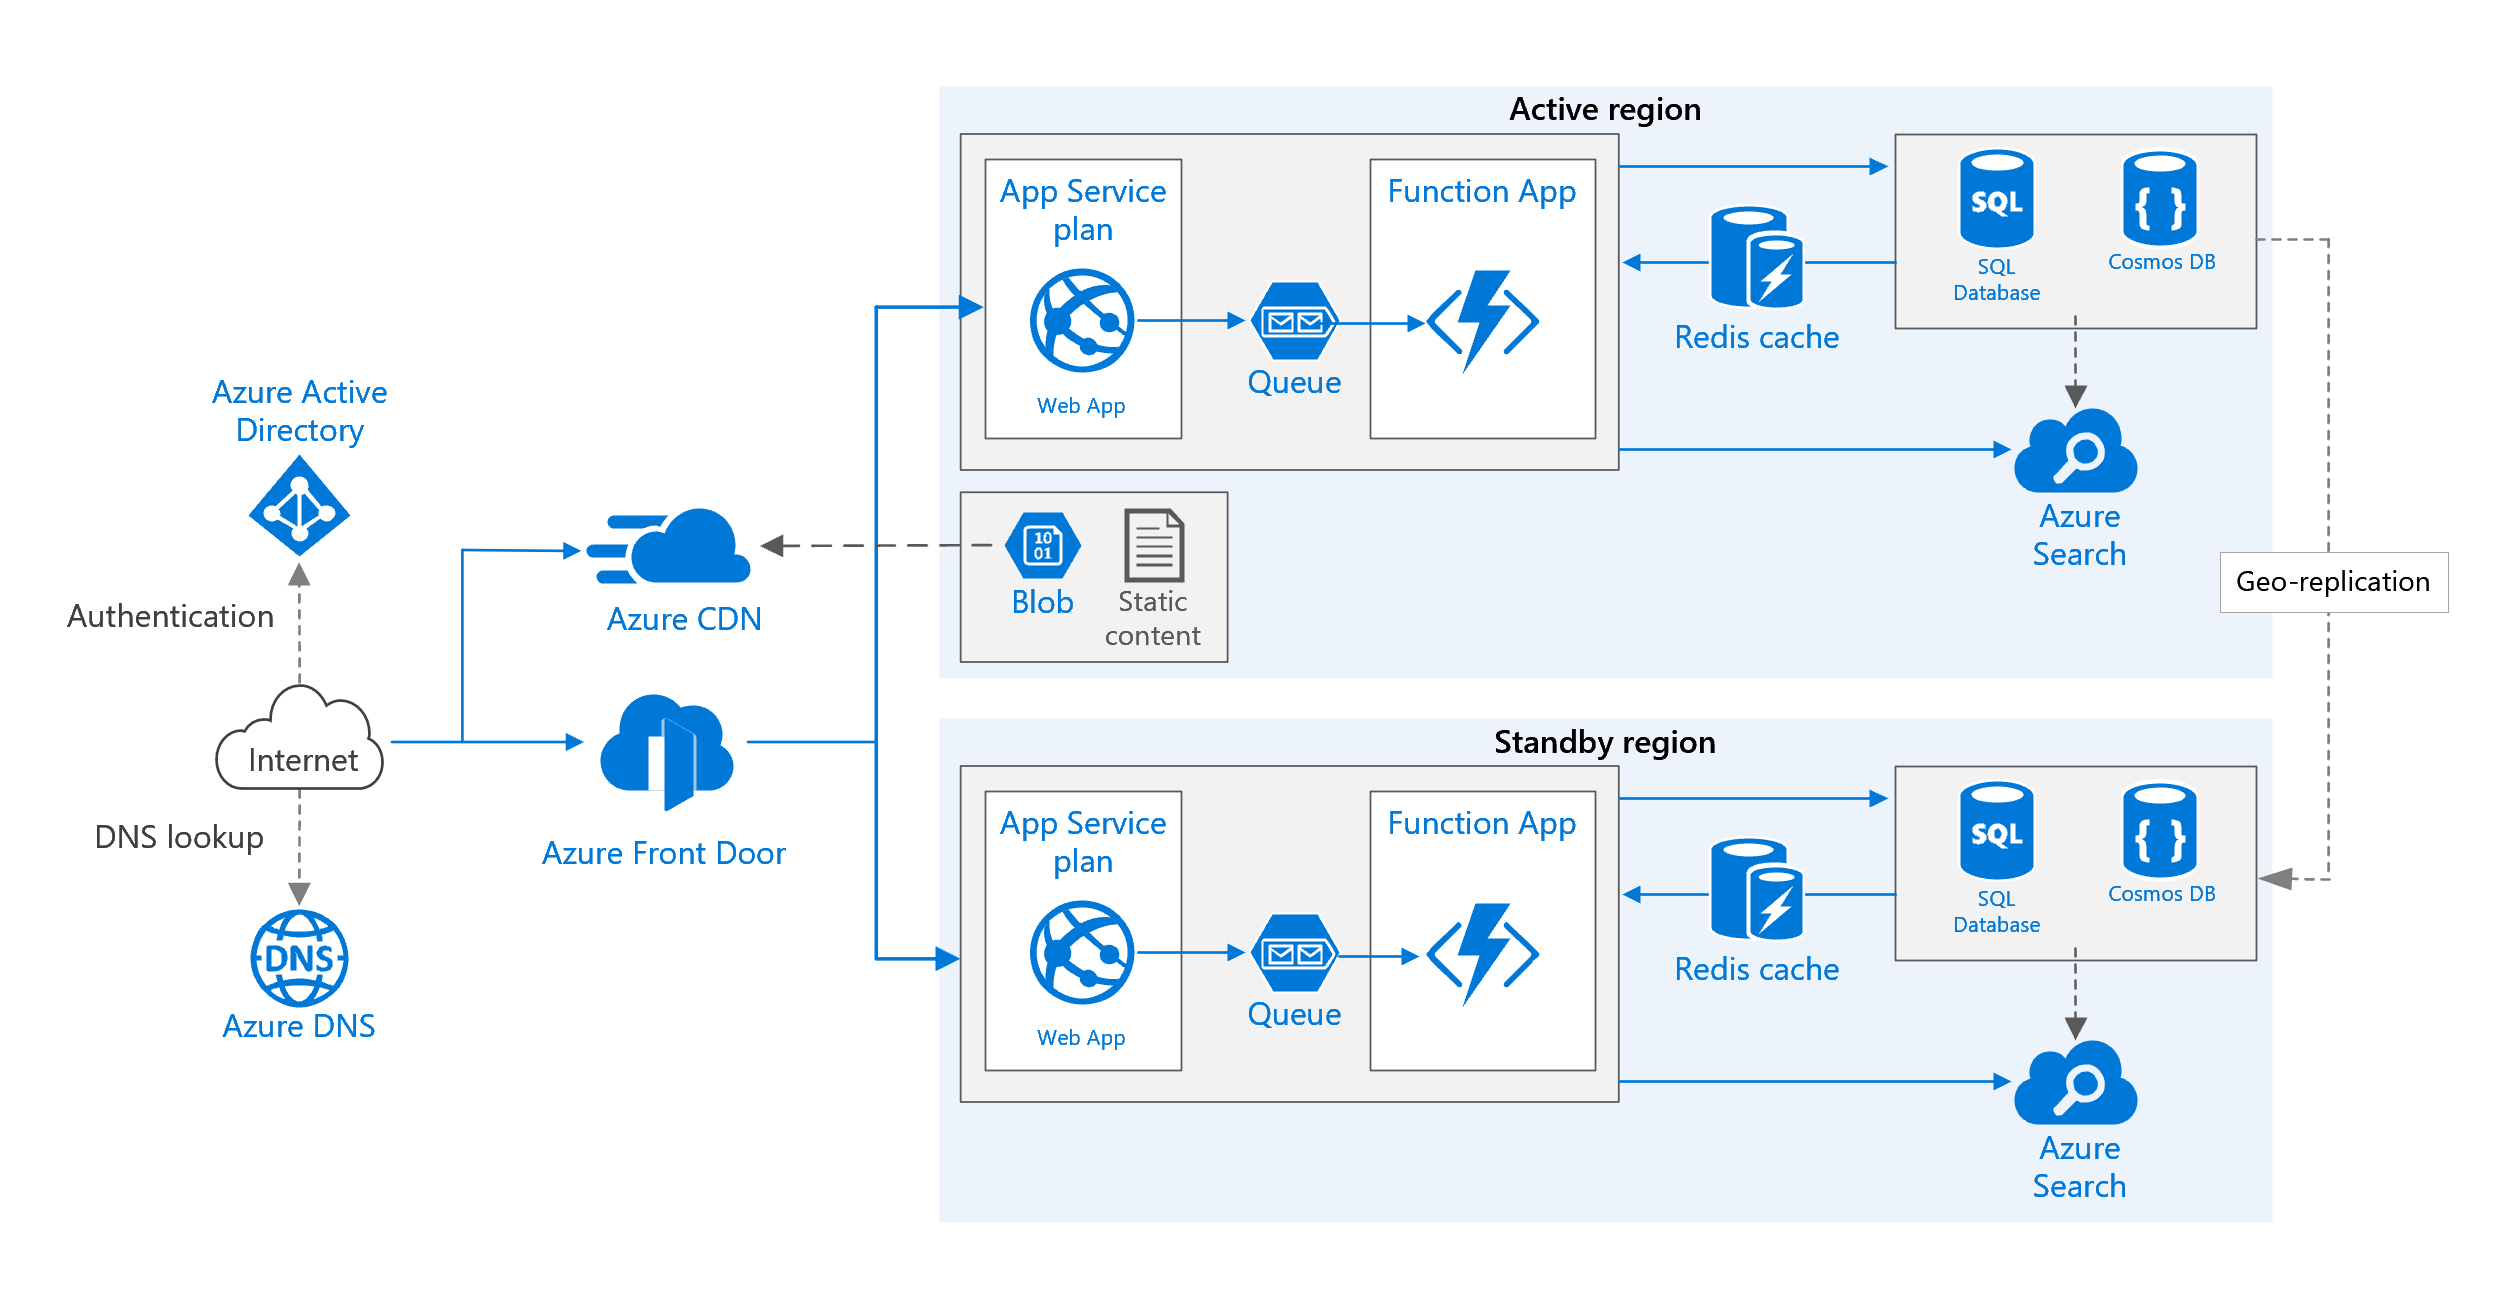 visio application diagram 2 way light switch wiring old colours highly available multi region web azure